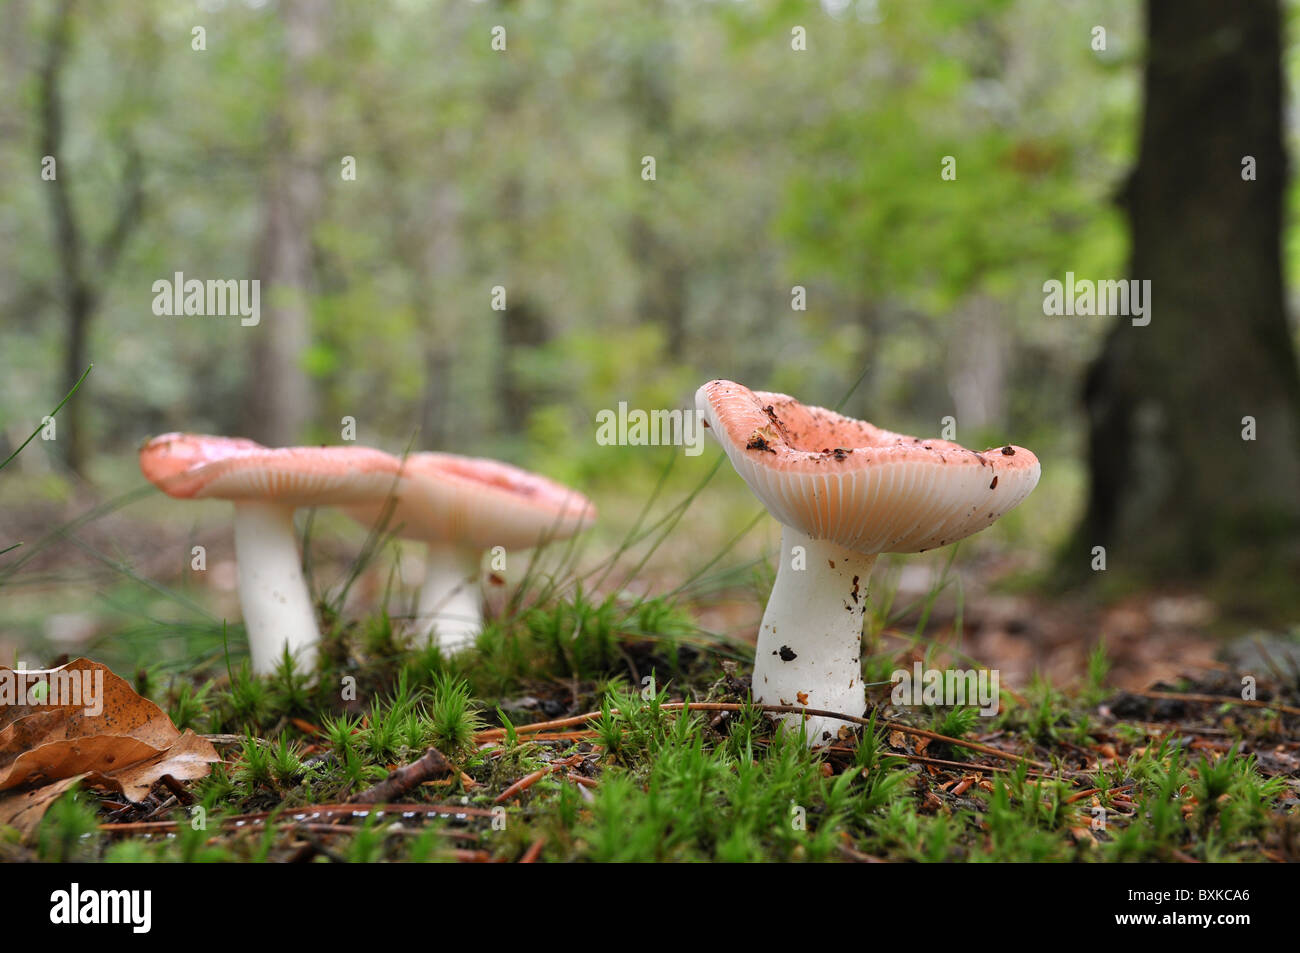 Redish mushrooms in autumn exploding from soil - Stock Image